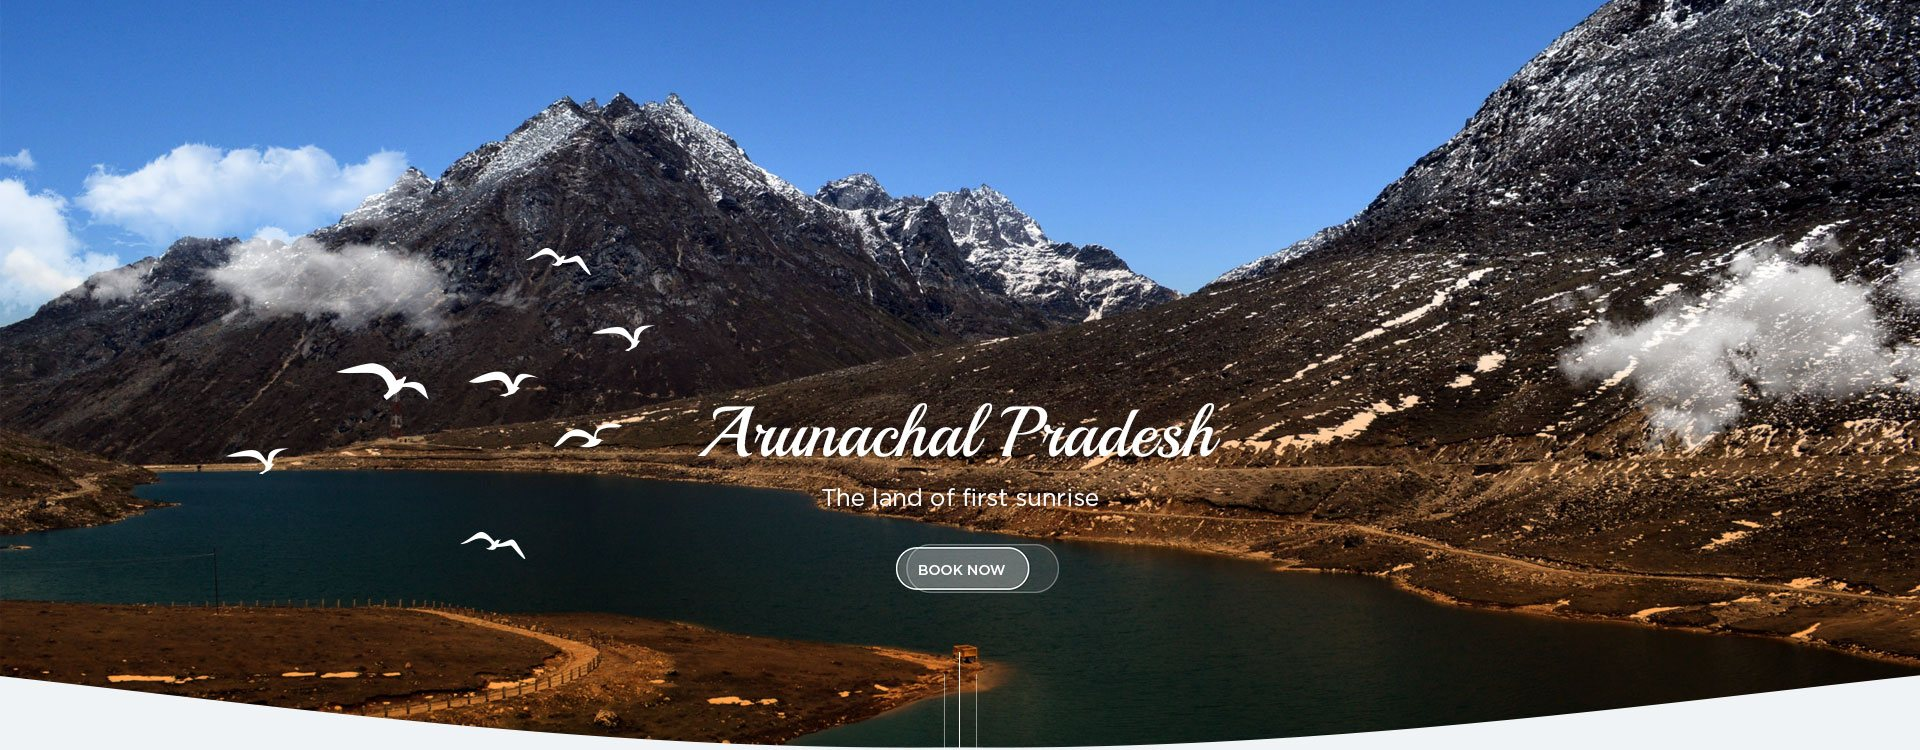 Arunachal Pradesh Tour & Travel Operator - Eastern Meadows Tour